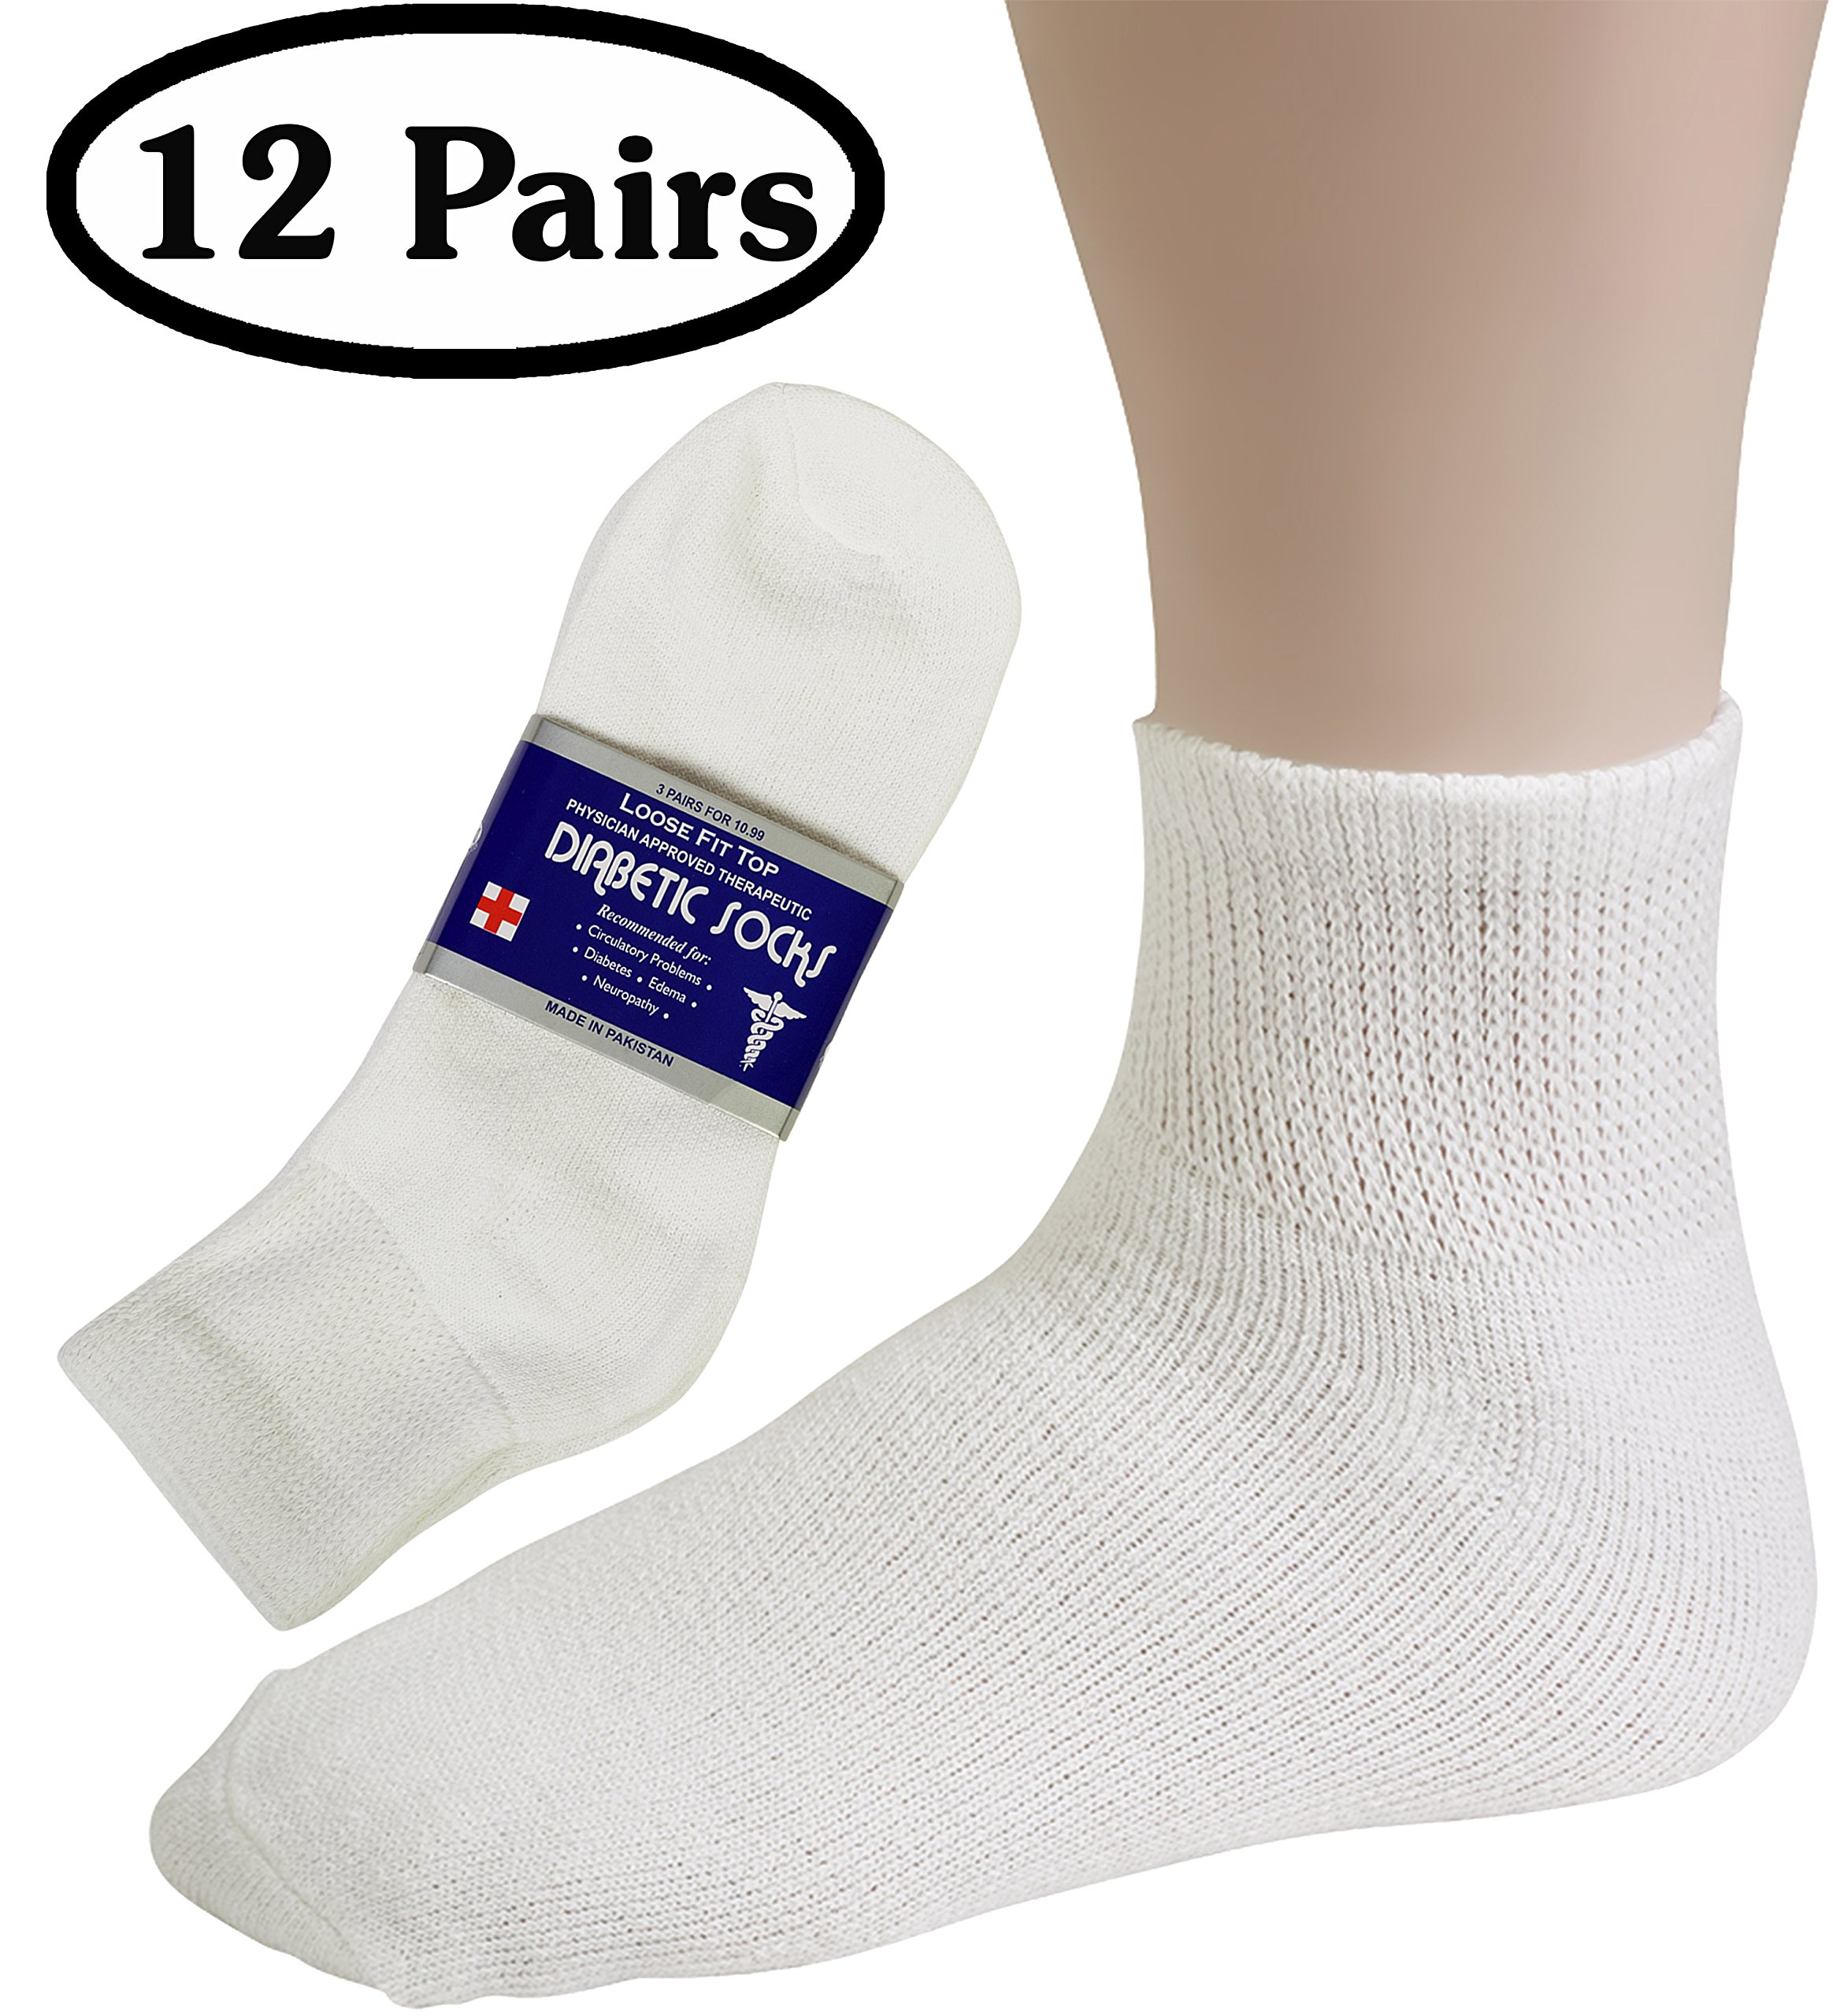 Debra Weitzner Womens Diabetic Socks Loose Cotton Socks 12-pack Ankle White